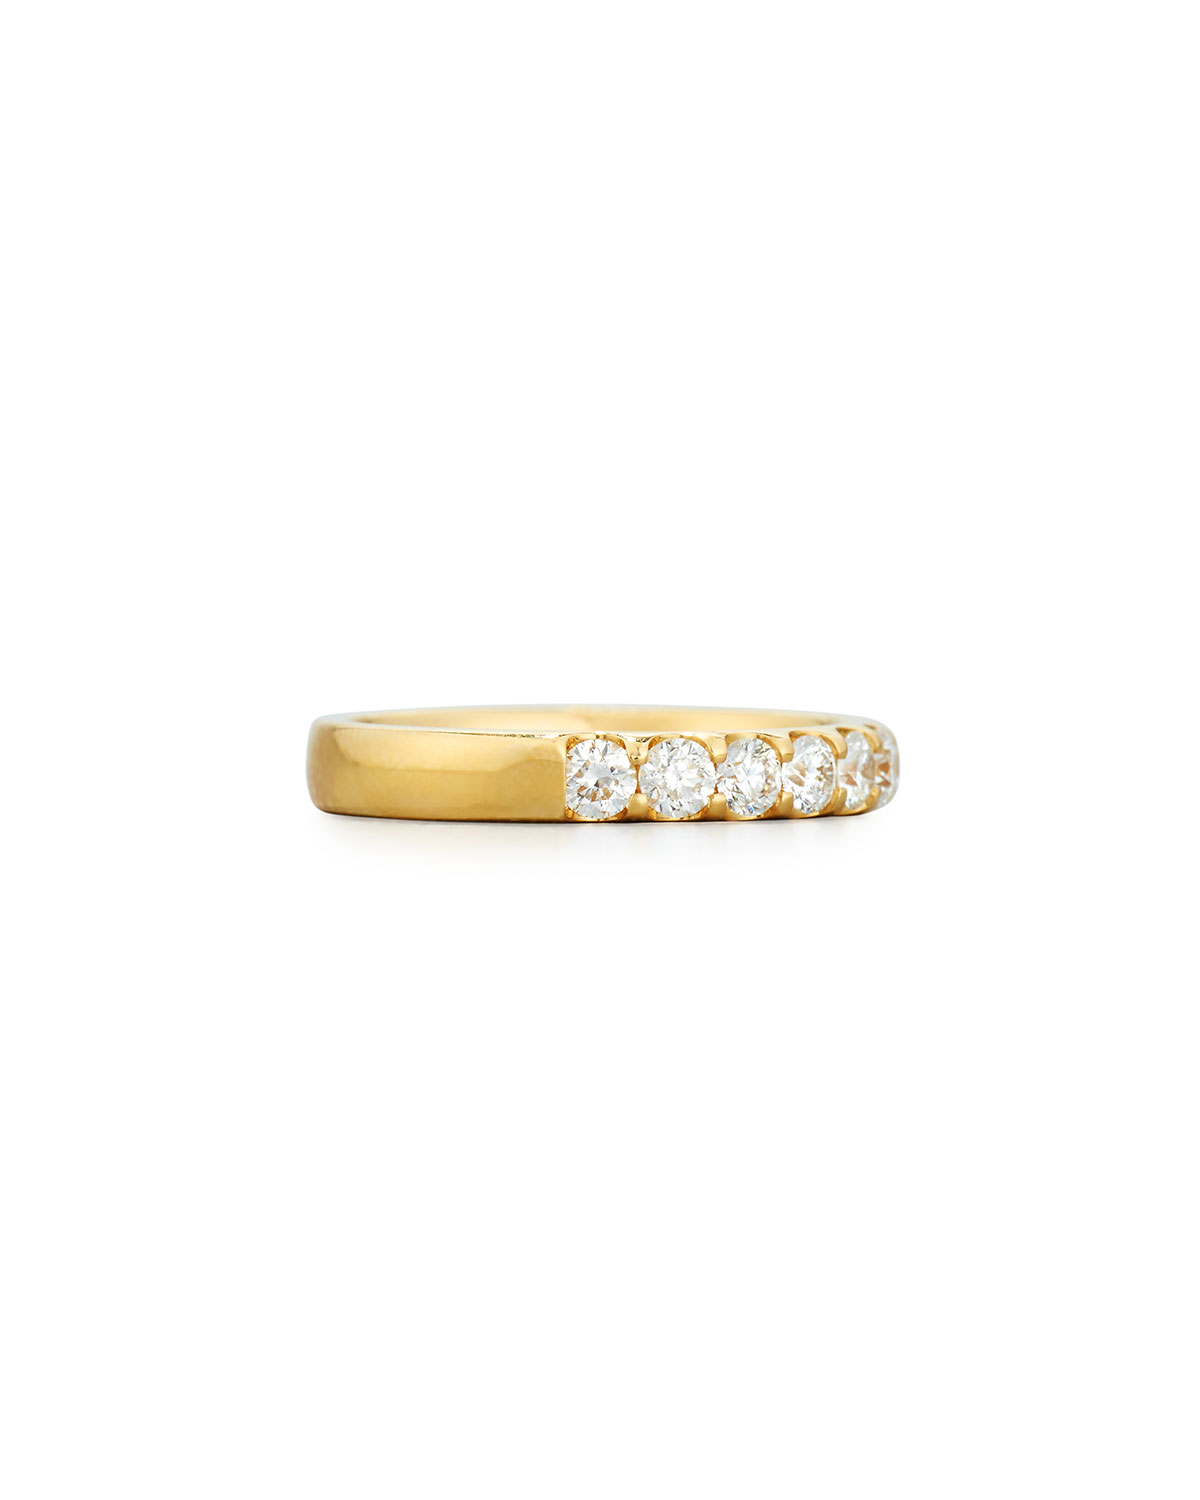 Memoire Diamond Band Ring in 18K White Gold, 1.5 tdcw